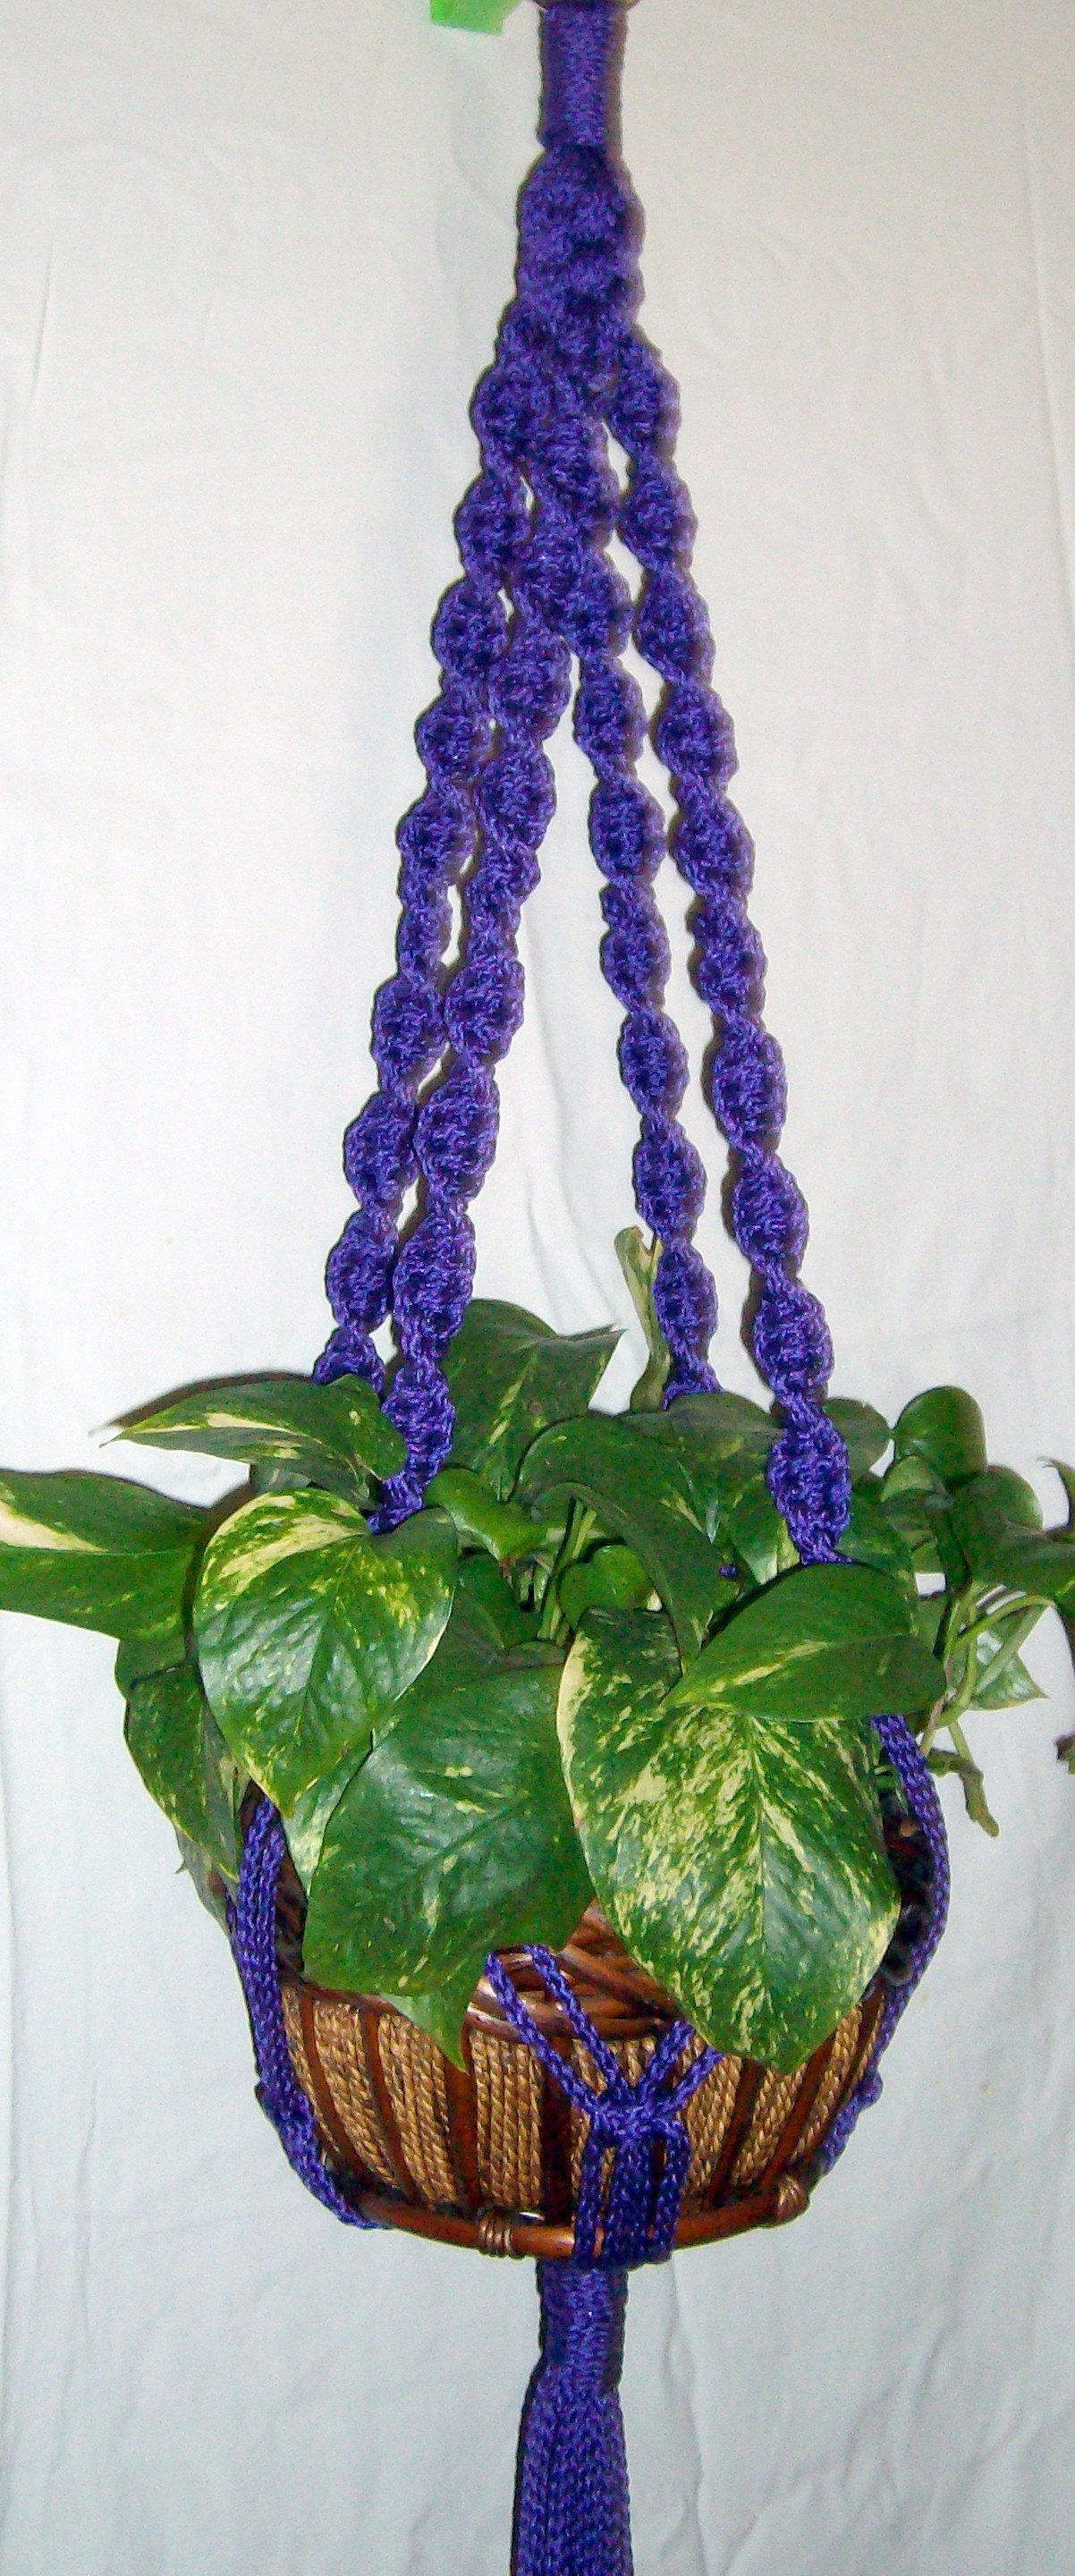 Macrame Plant Hanger Large Flower Pot Holder Indoor Outdoor Spiral 4 Legs 45 Purple Macrame Flower Pot Hanger Other Colors Available Flower Pot Hanger Macrame Plant Hanger Flower Pot Holder